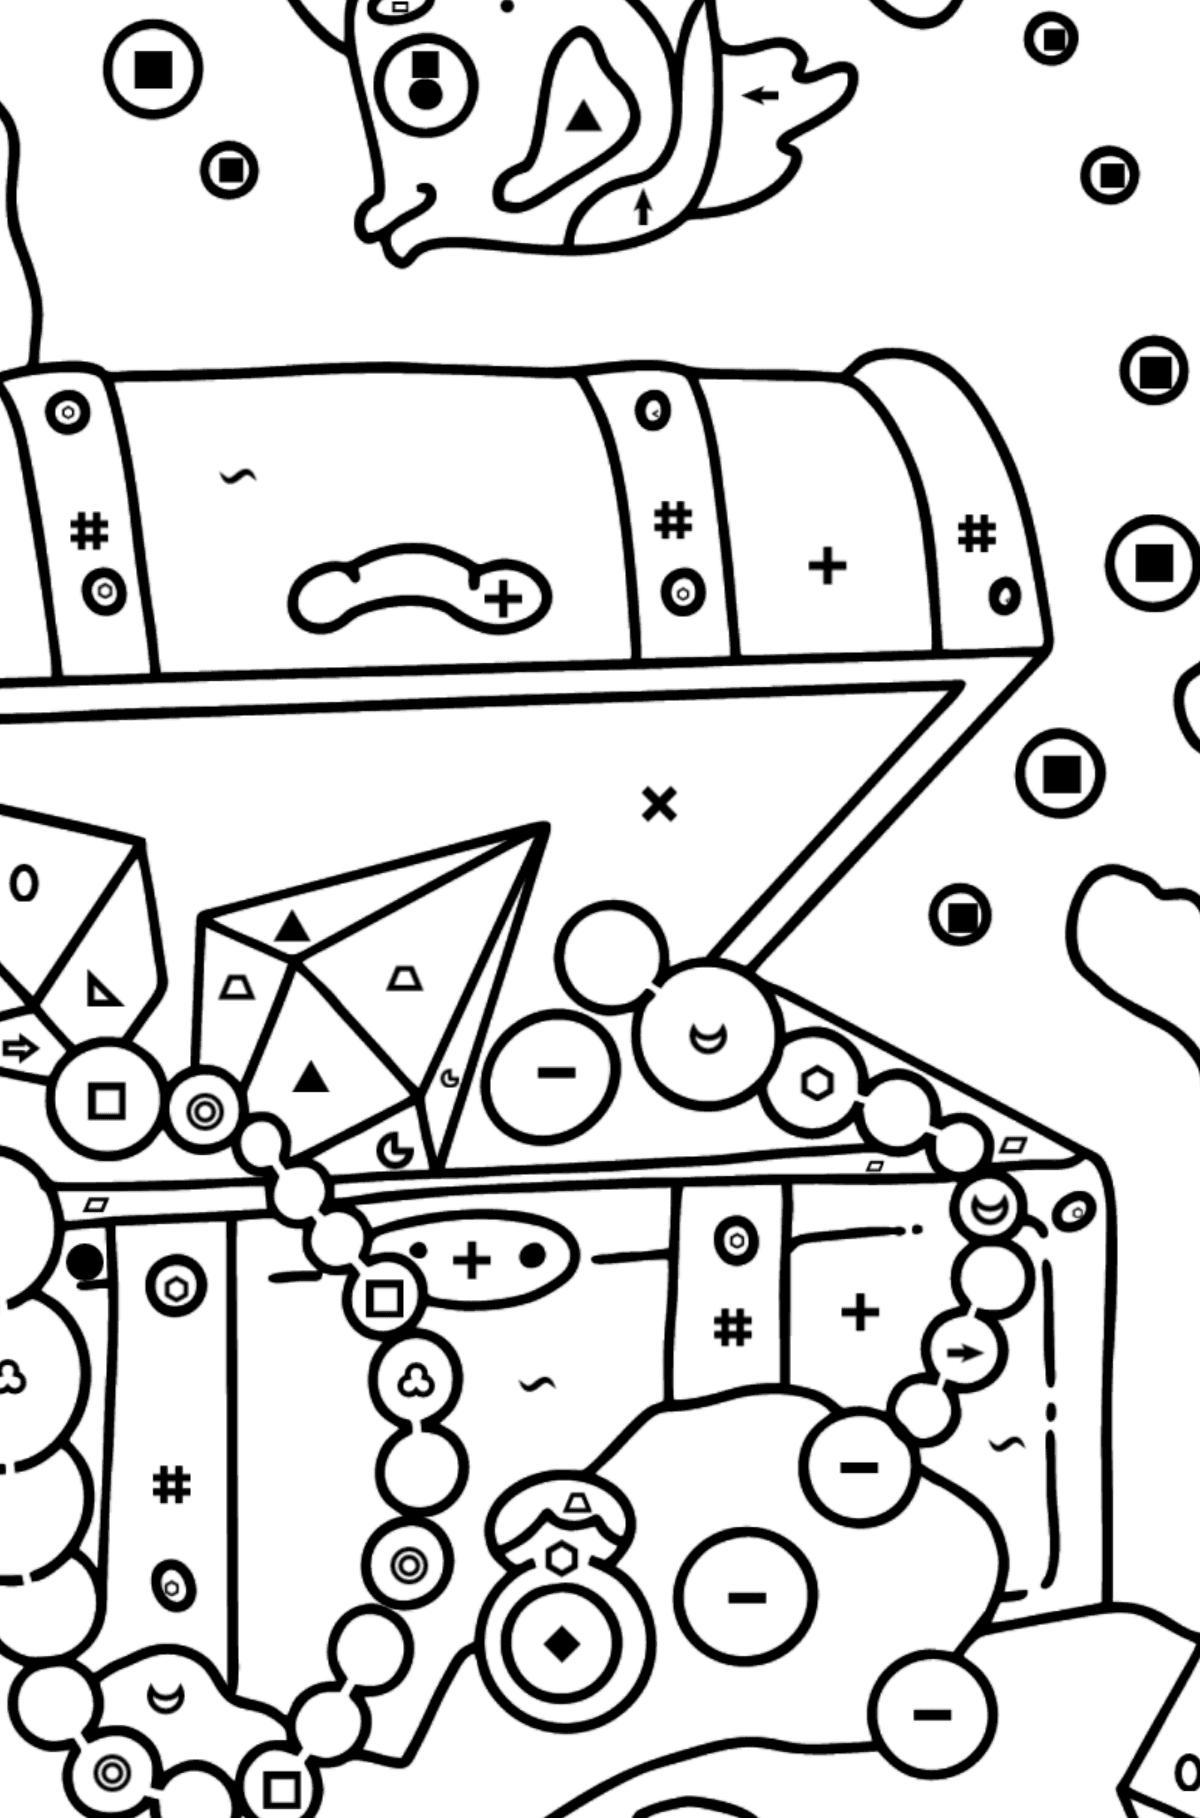 Coloring Page - A Fish is Taking a Peek at a Treasure - Coloring by Symbols and Geometric Shapes for Kids